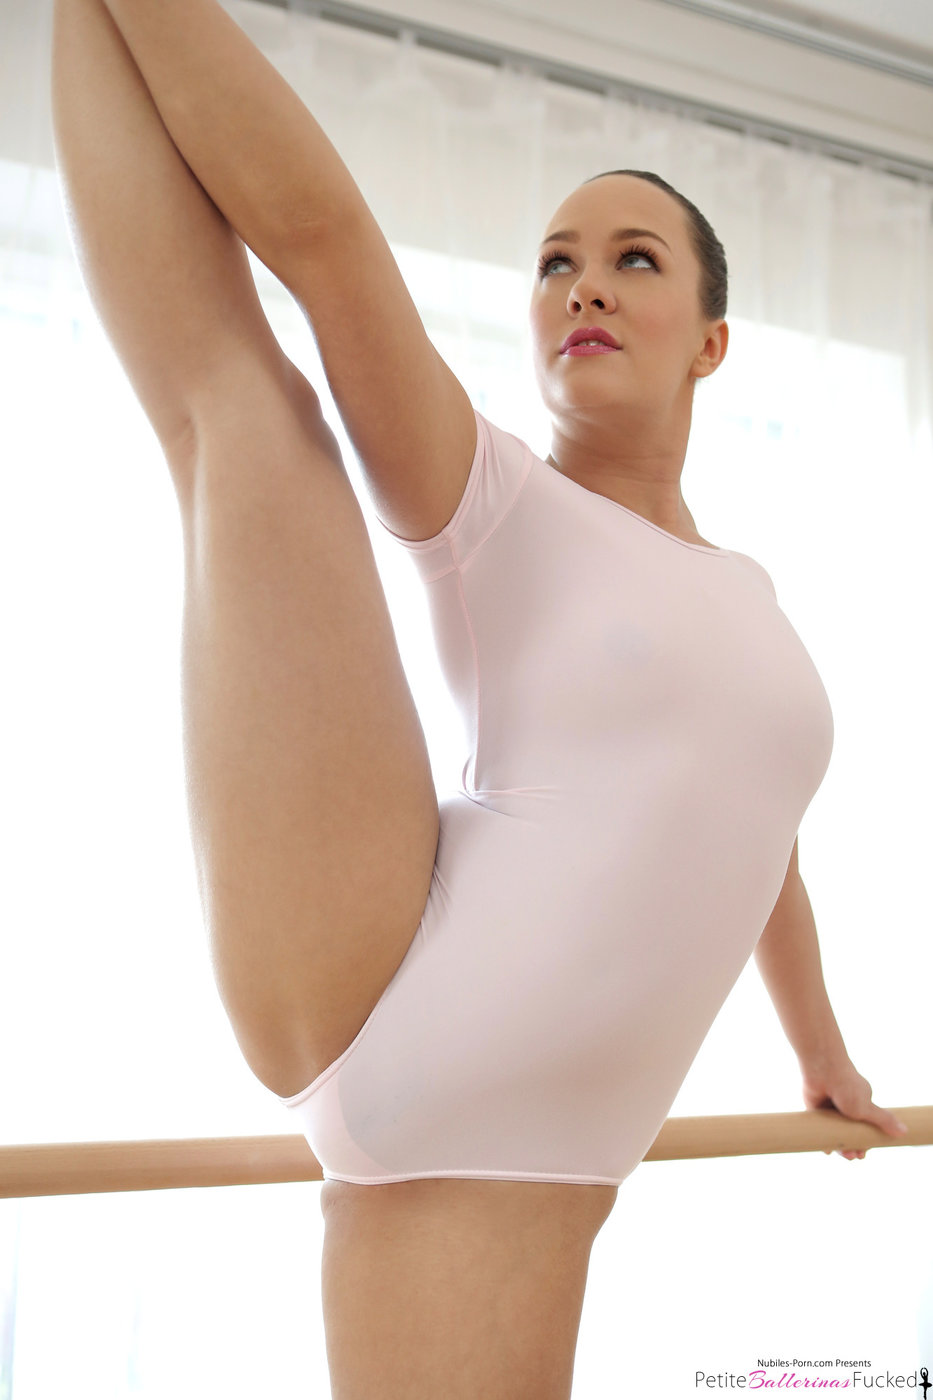 Angelic Ballerina With A Perfect Body Showing Her Trimmed Pussy And Fucking Iamxxx Com